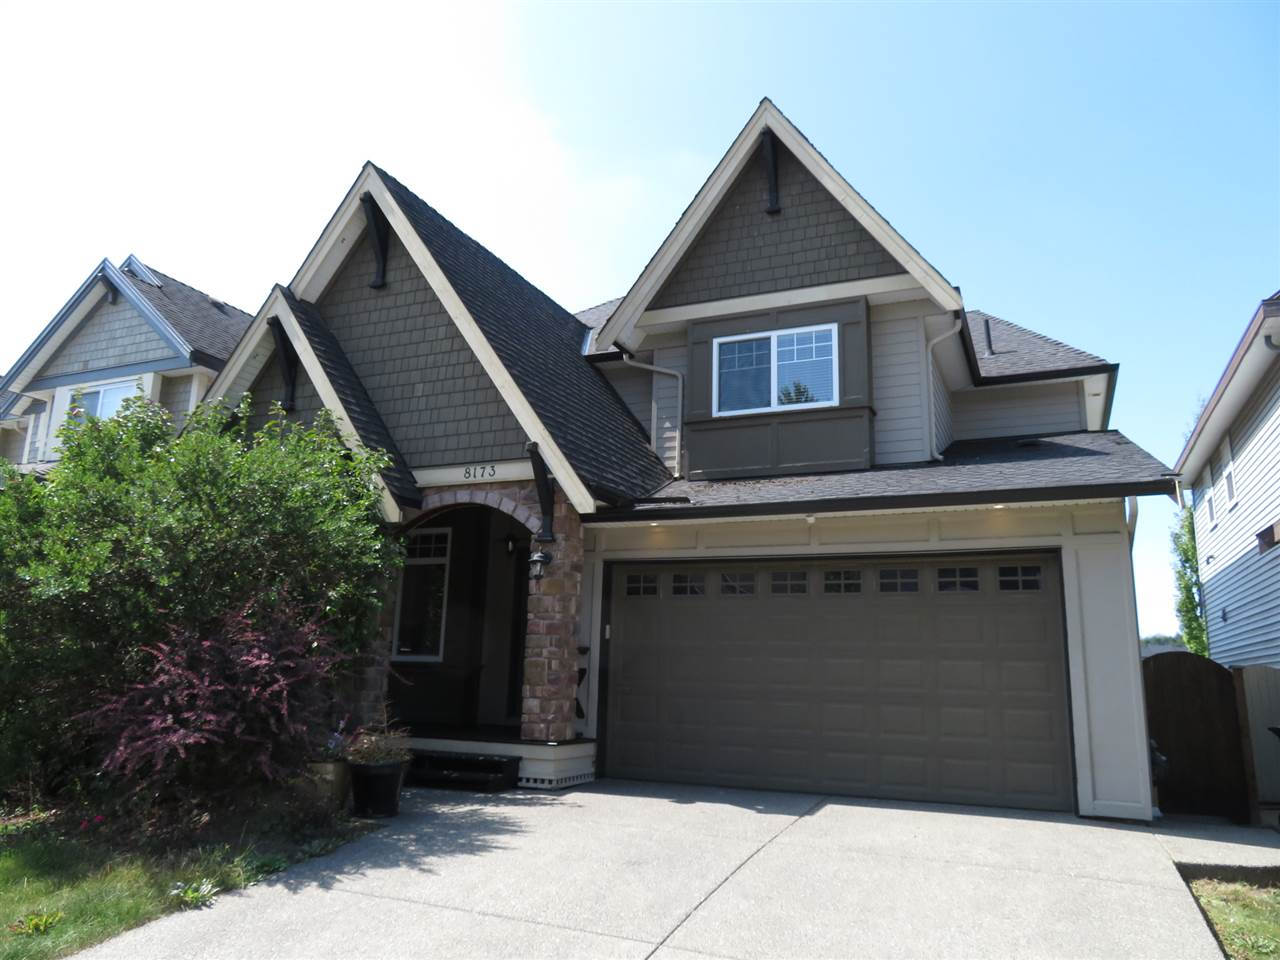 Removed: 8173 211 Street, Langley, BC - Removed on 2019-08-29 05:30:24